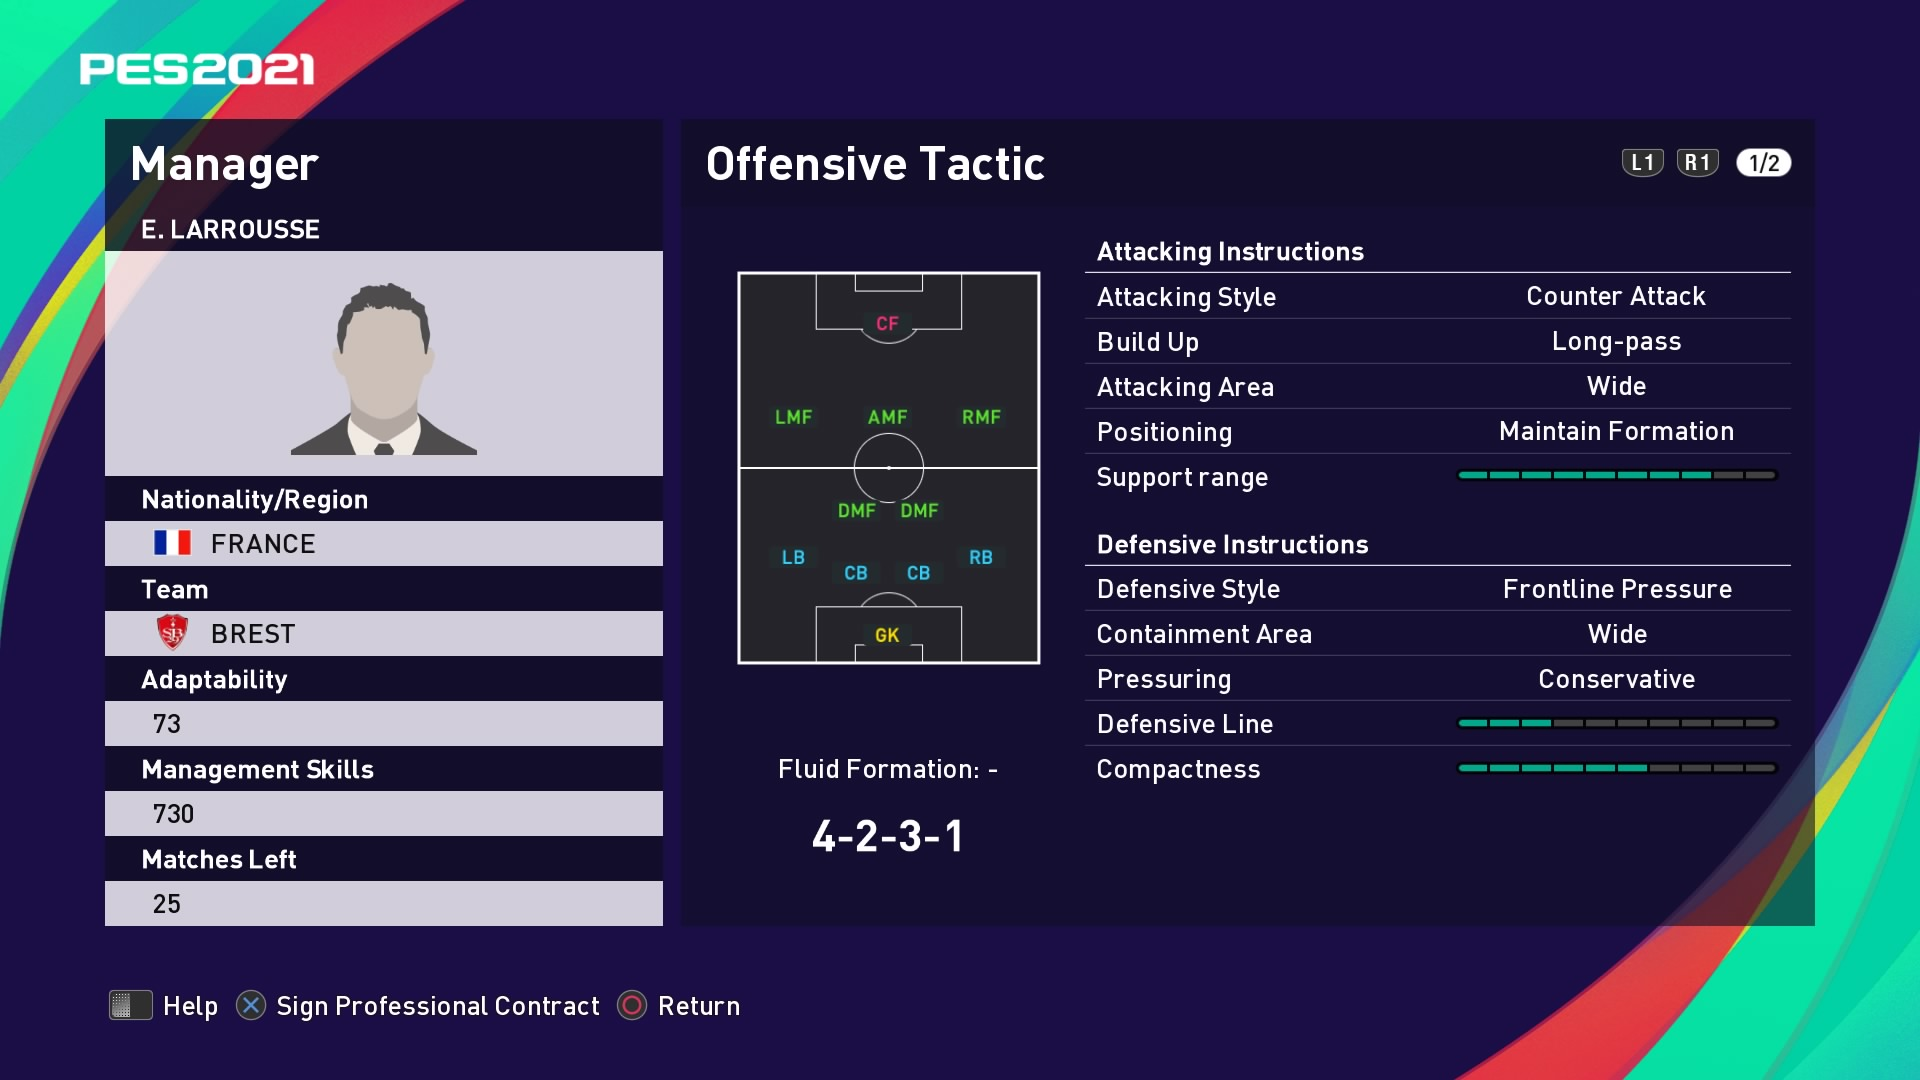 E. Larrousse (Olivier Dall'Oglio) Offensive Tactic in PES 2021 myClub